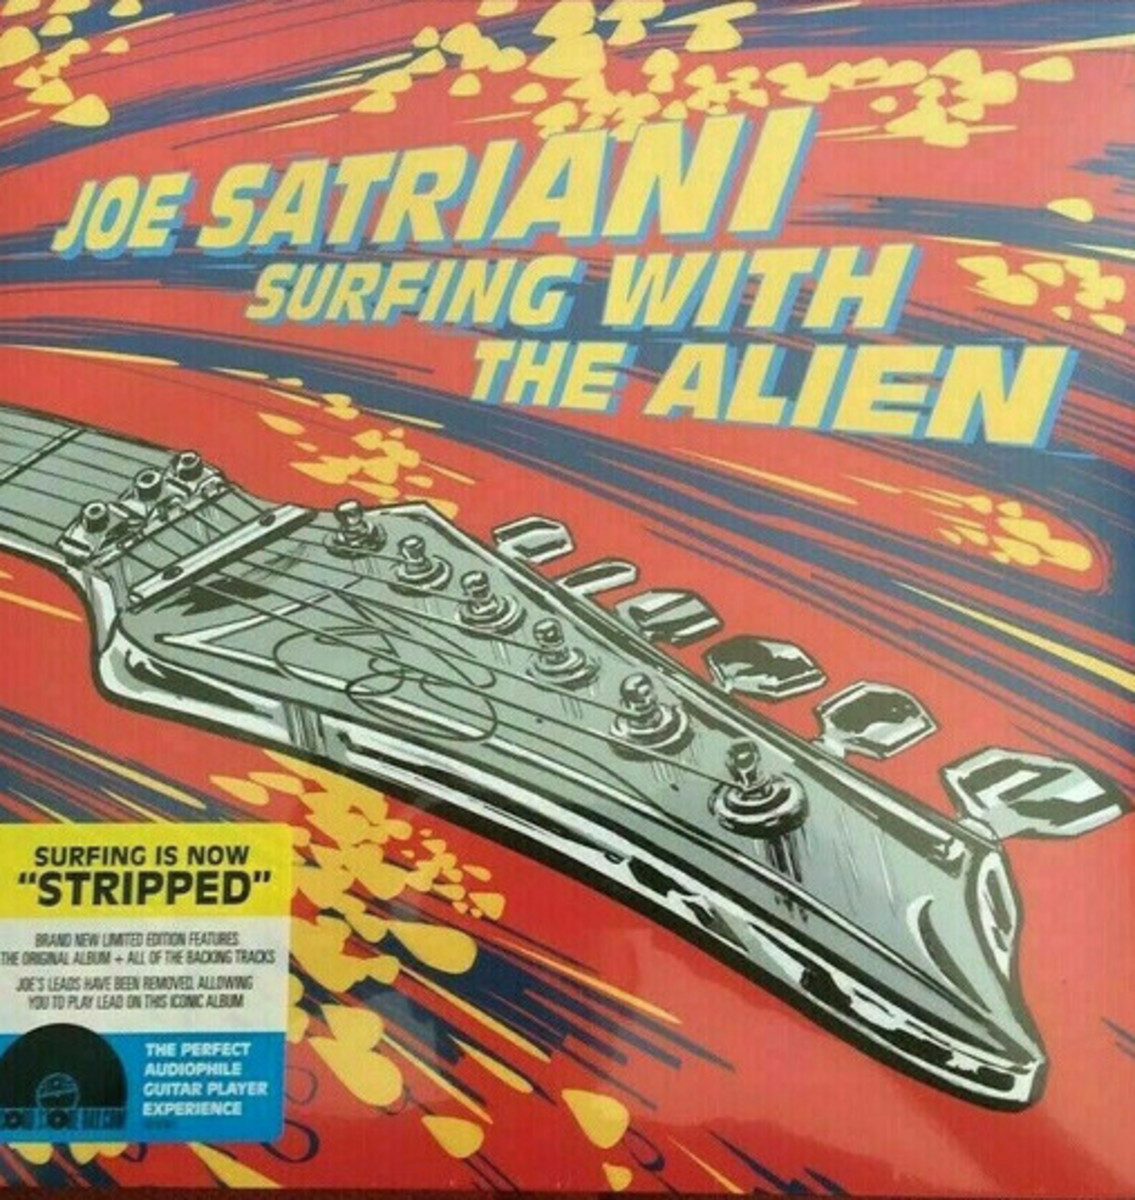 """A Record Store Day Black Friday exclusive limited edition release, with a red variant of """"Surfing With The Alien"""" and a yellow variant of """"Surfing With The Alien (Stripped)""""; a special edition mix of the album that features just the backing tracks of the music. Limited to 3,500 presses. Includes digital download card. Plus, the release includes printed inner sleeves containing photographs, credits and liner notes describing the stripped version."""